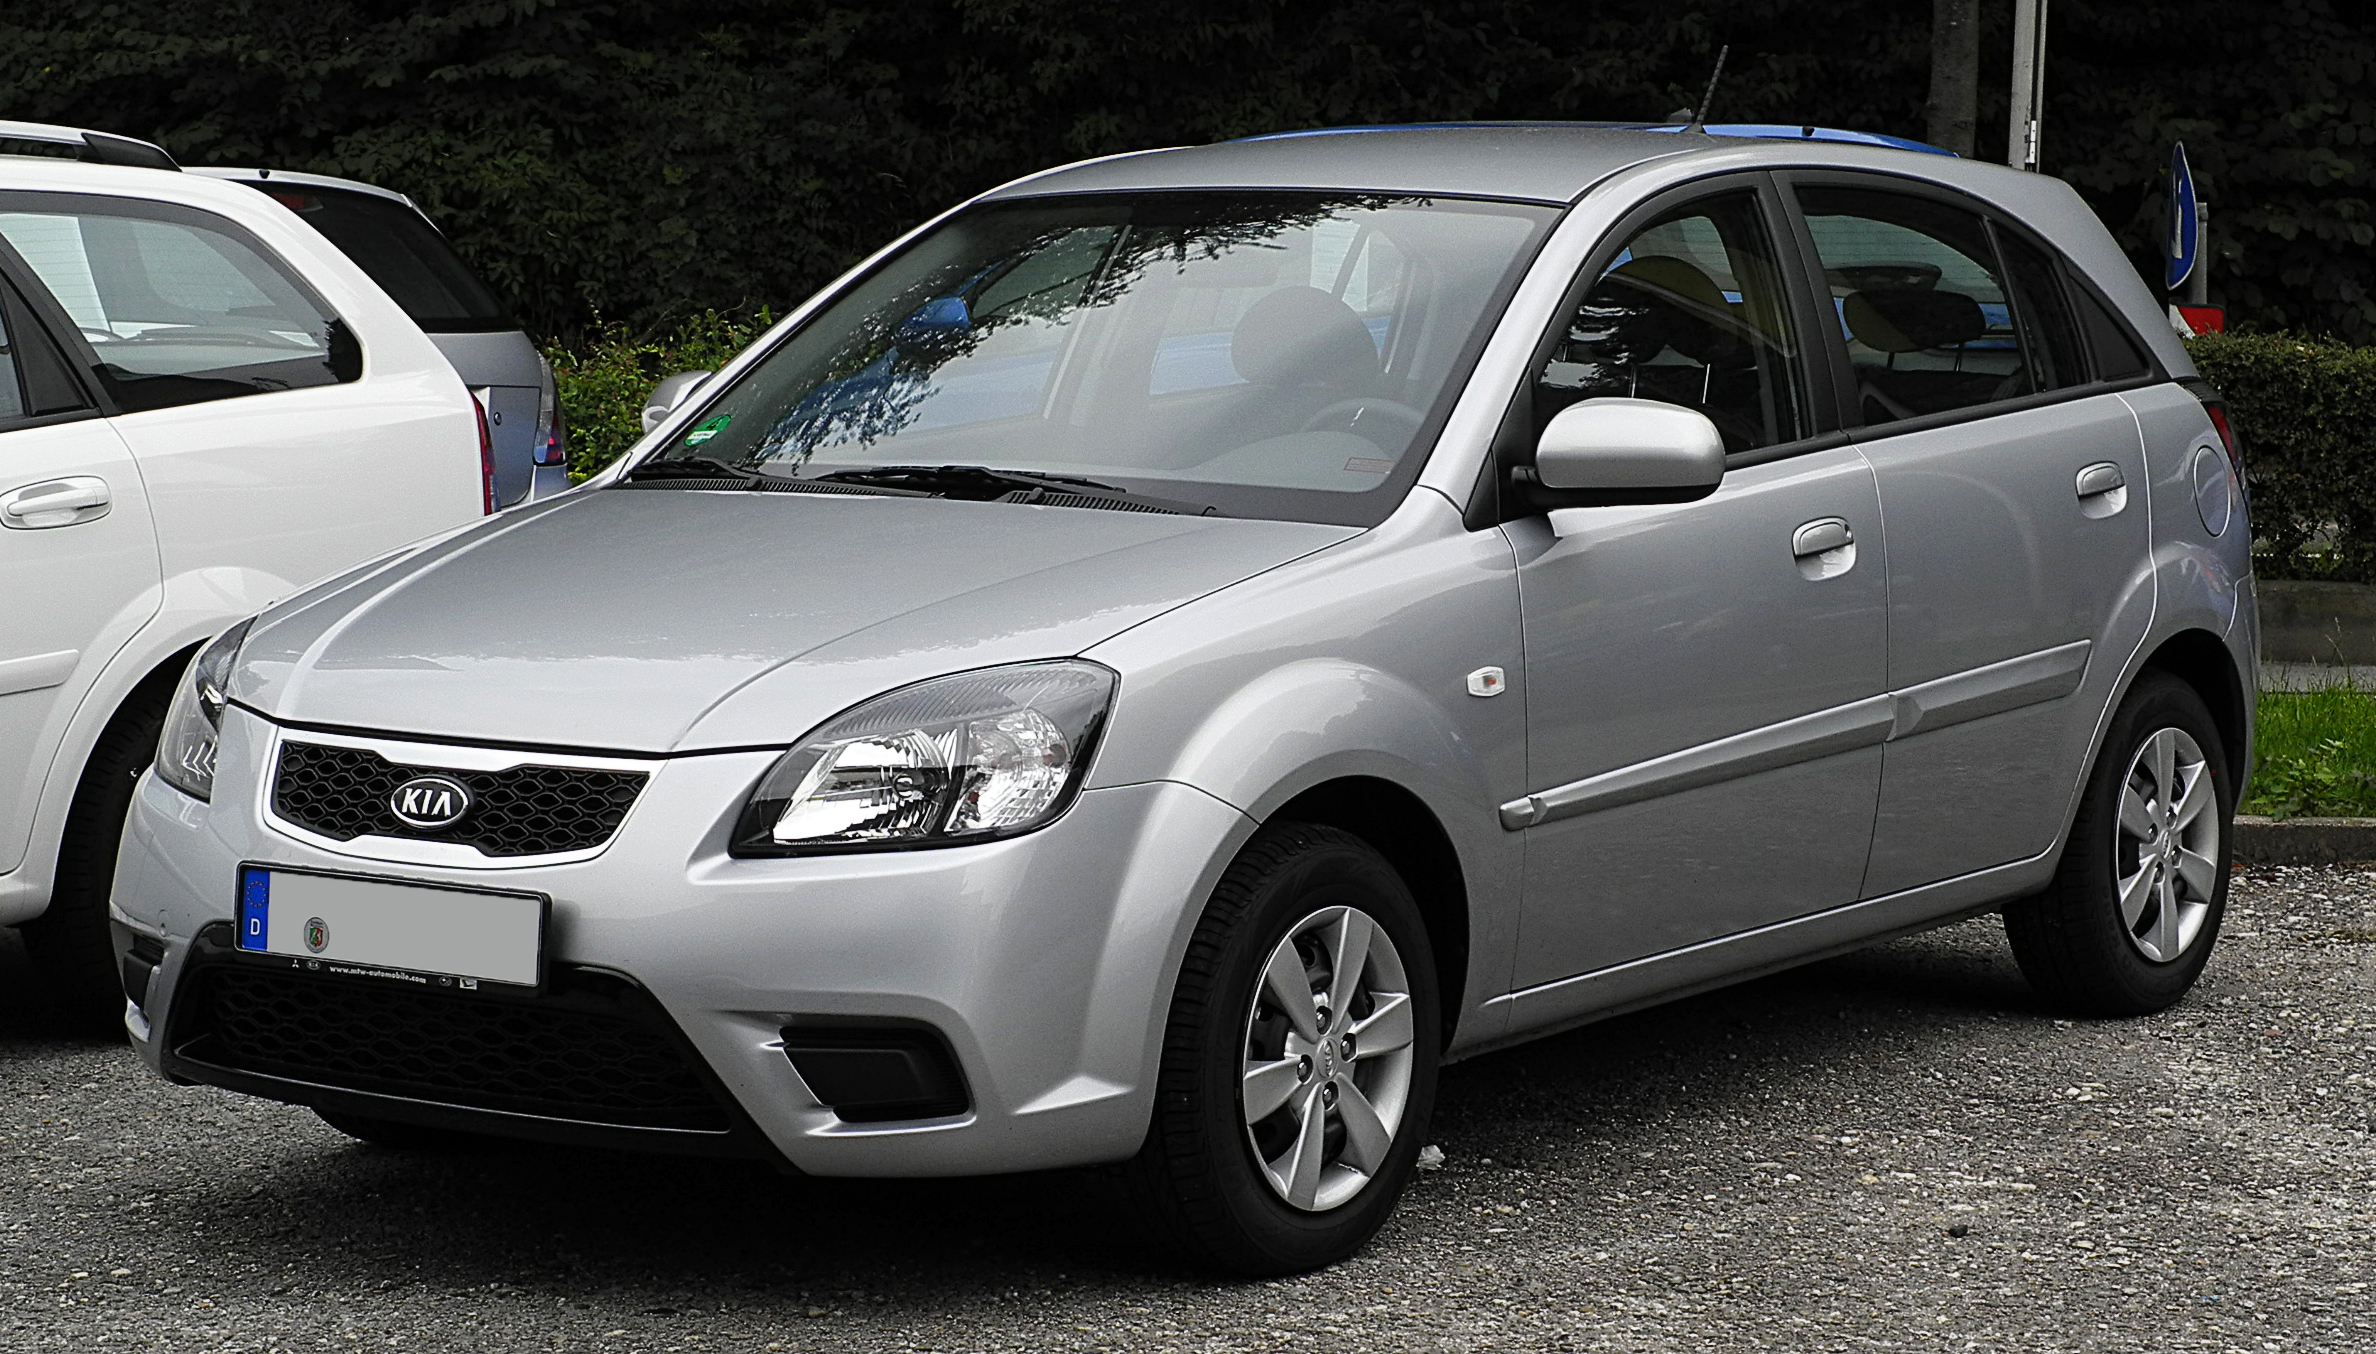 2014 kia rio ii 2 pictures information and specs. Black Bedroom Furniture Sets. Home Design Ideas